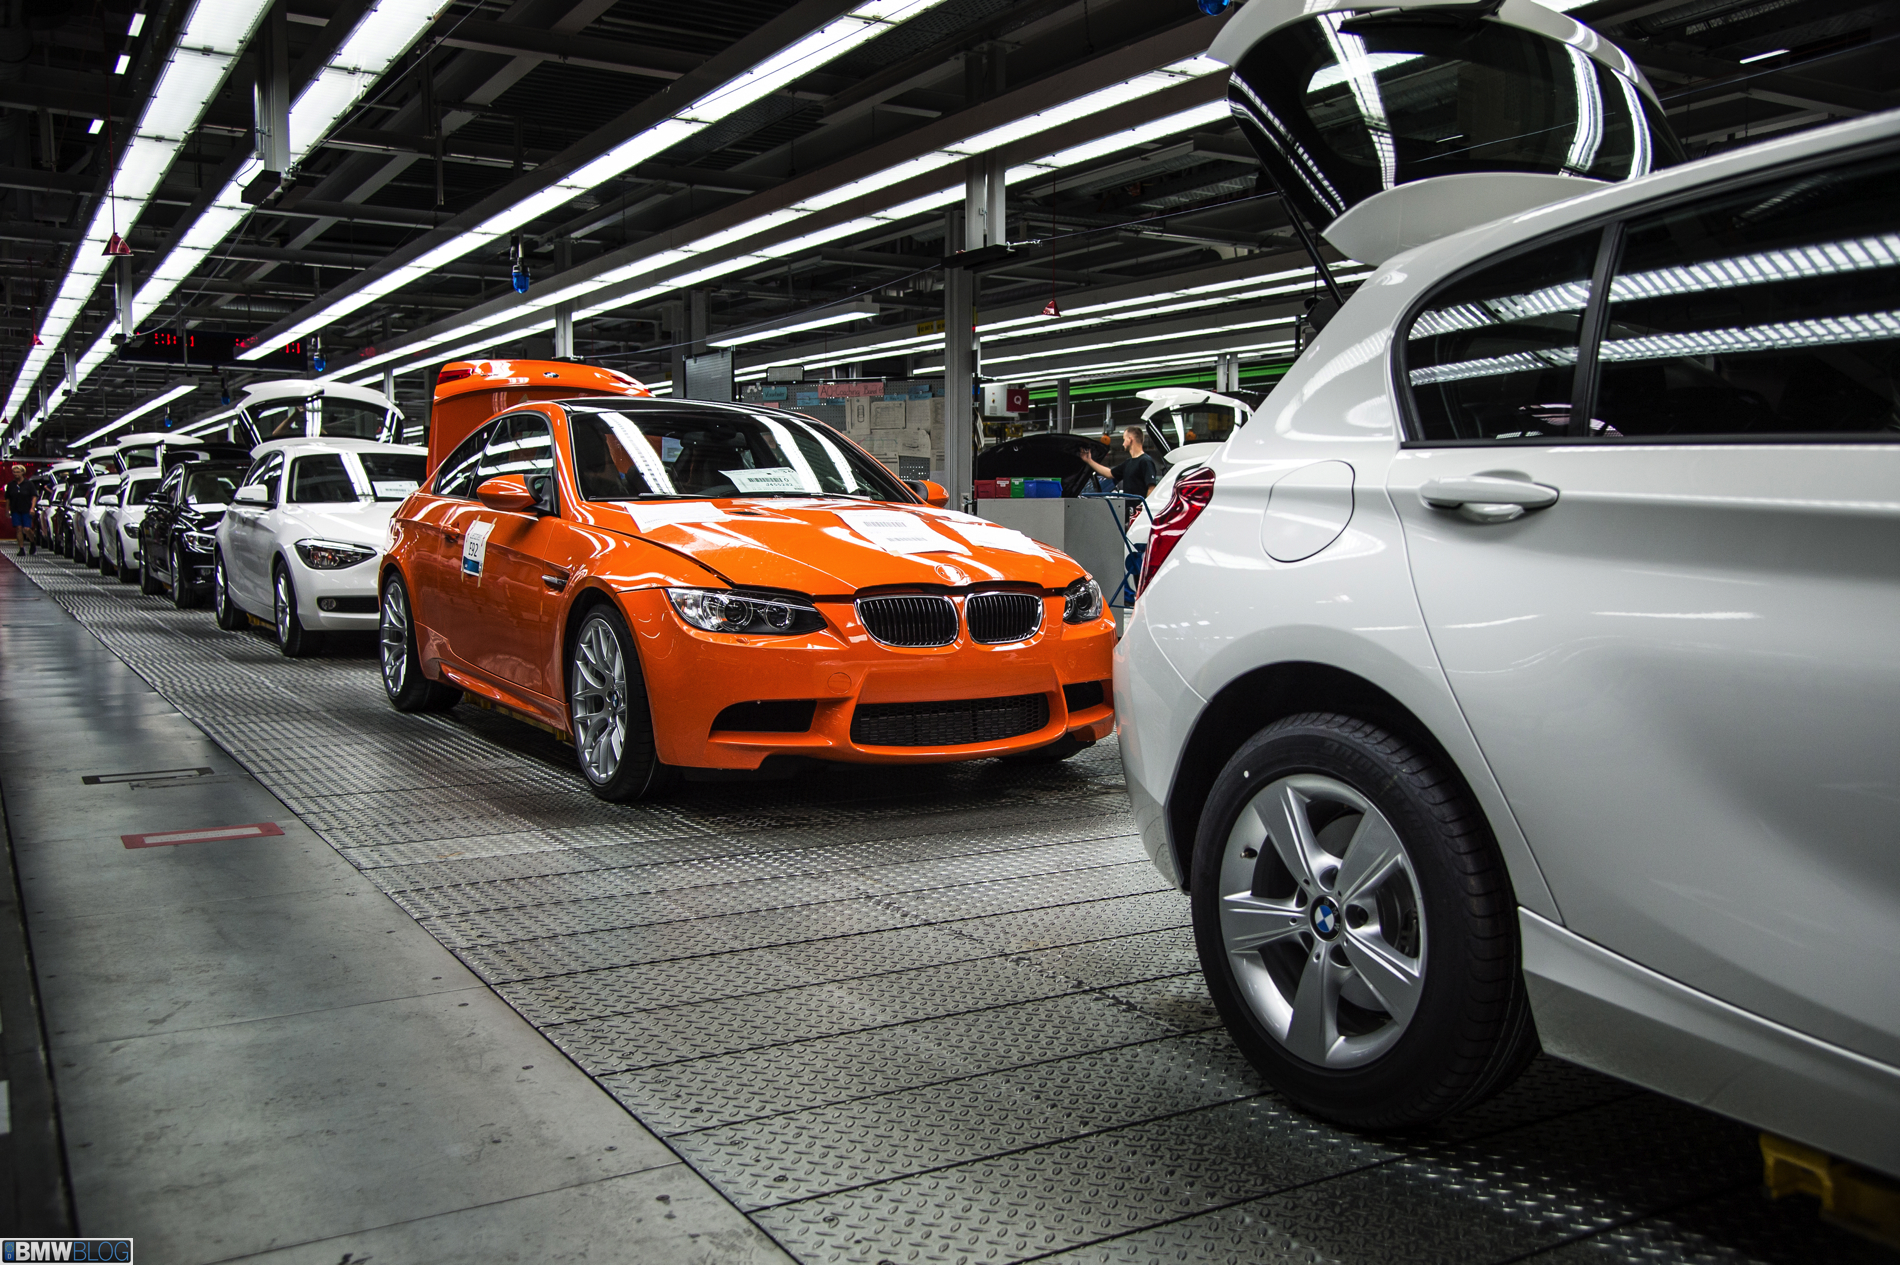 E92 Bmw M3 Coupe Reaches The End Of Its Production Run